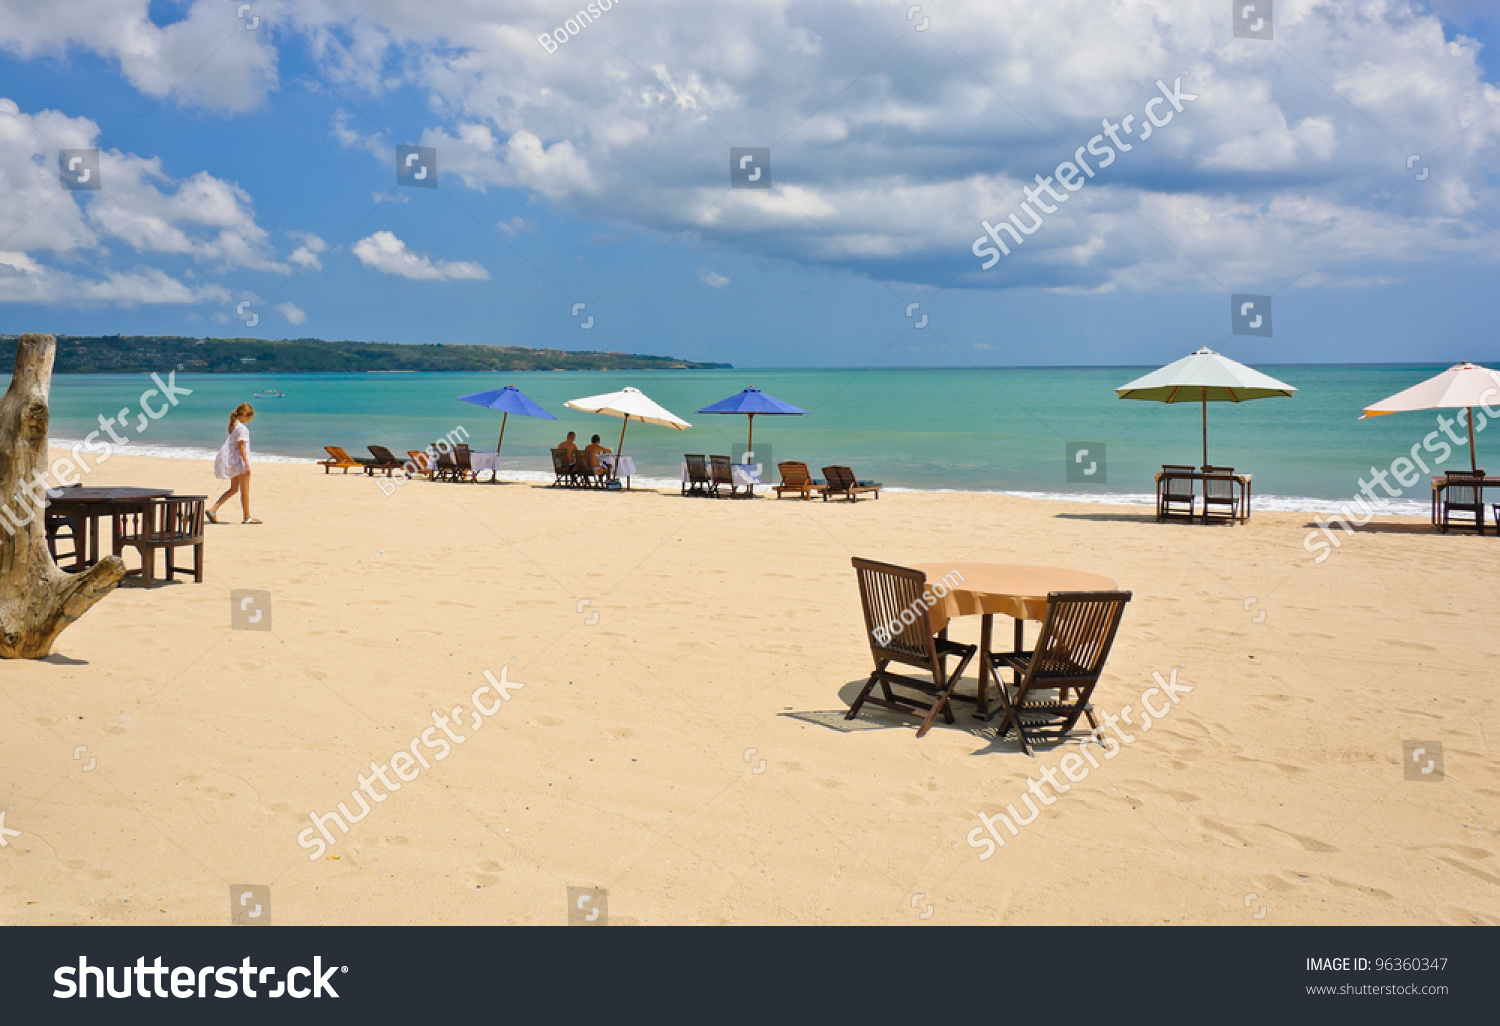 Jimbaran Beach Bali Indonesia Stock Photo Edit Now 96360347